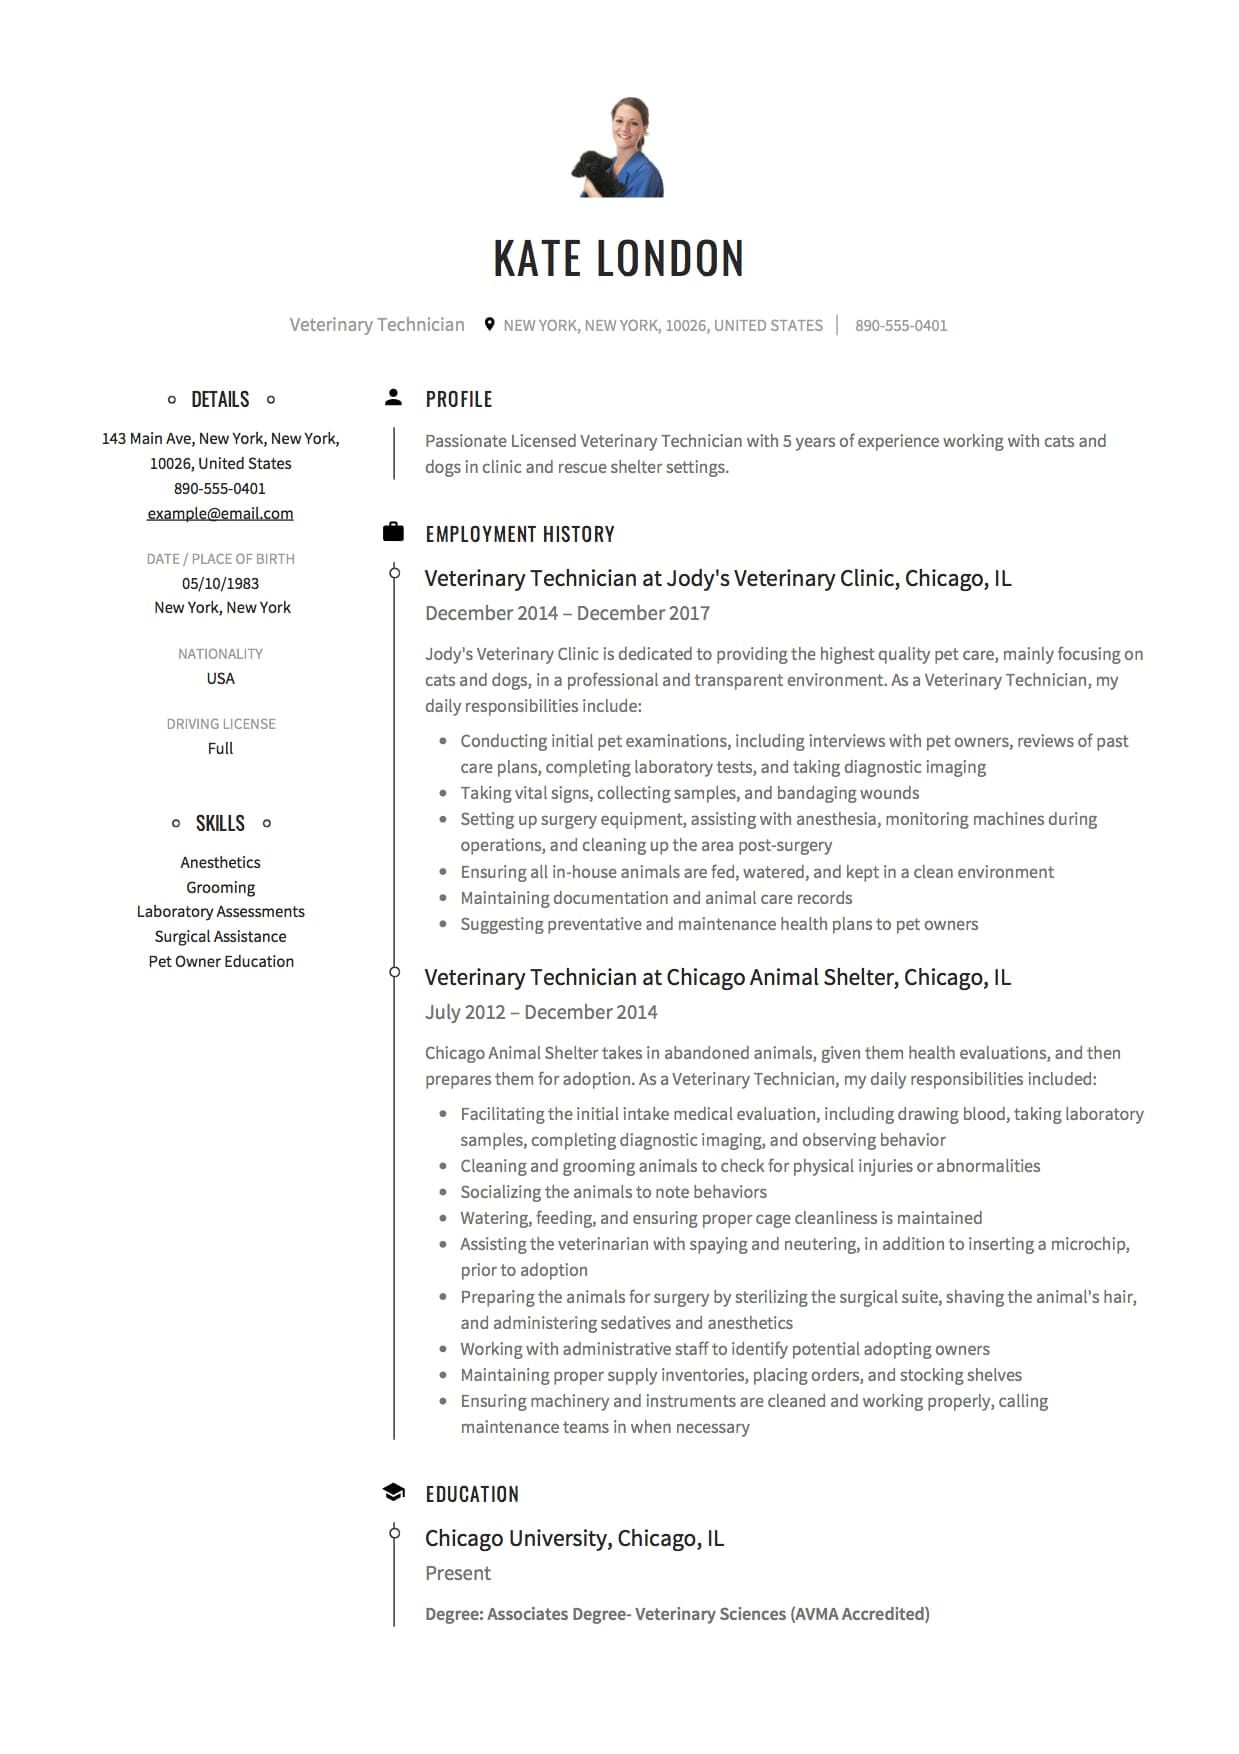 Veterinary Technician Resume Example Veterinary Technician Medical Resume Template Vet Tech Job Description